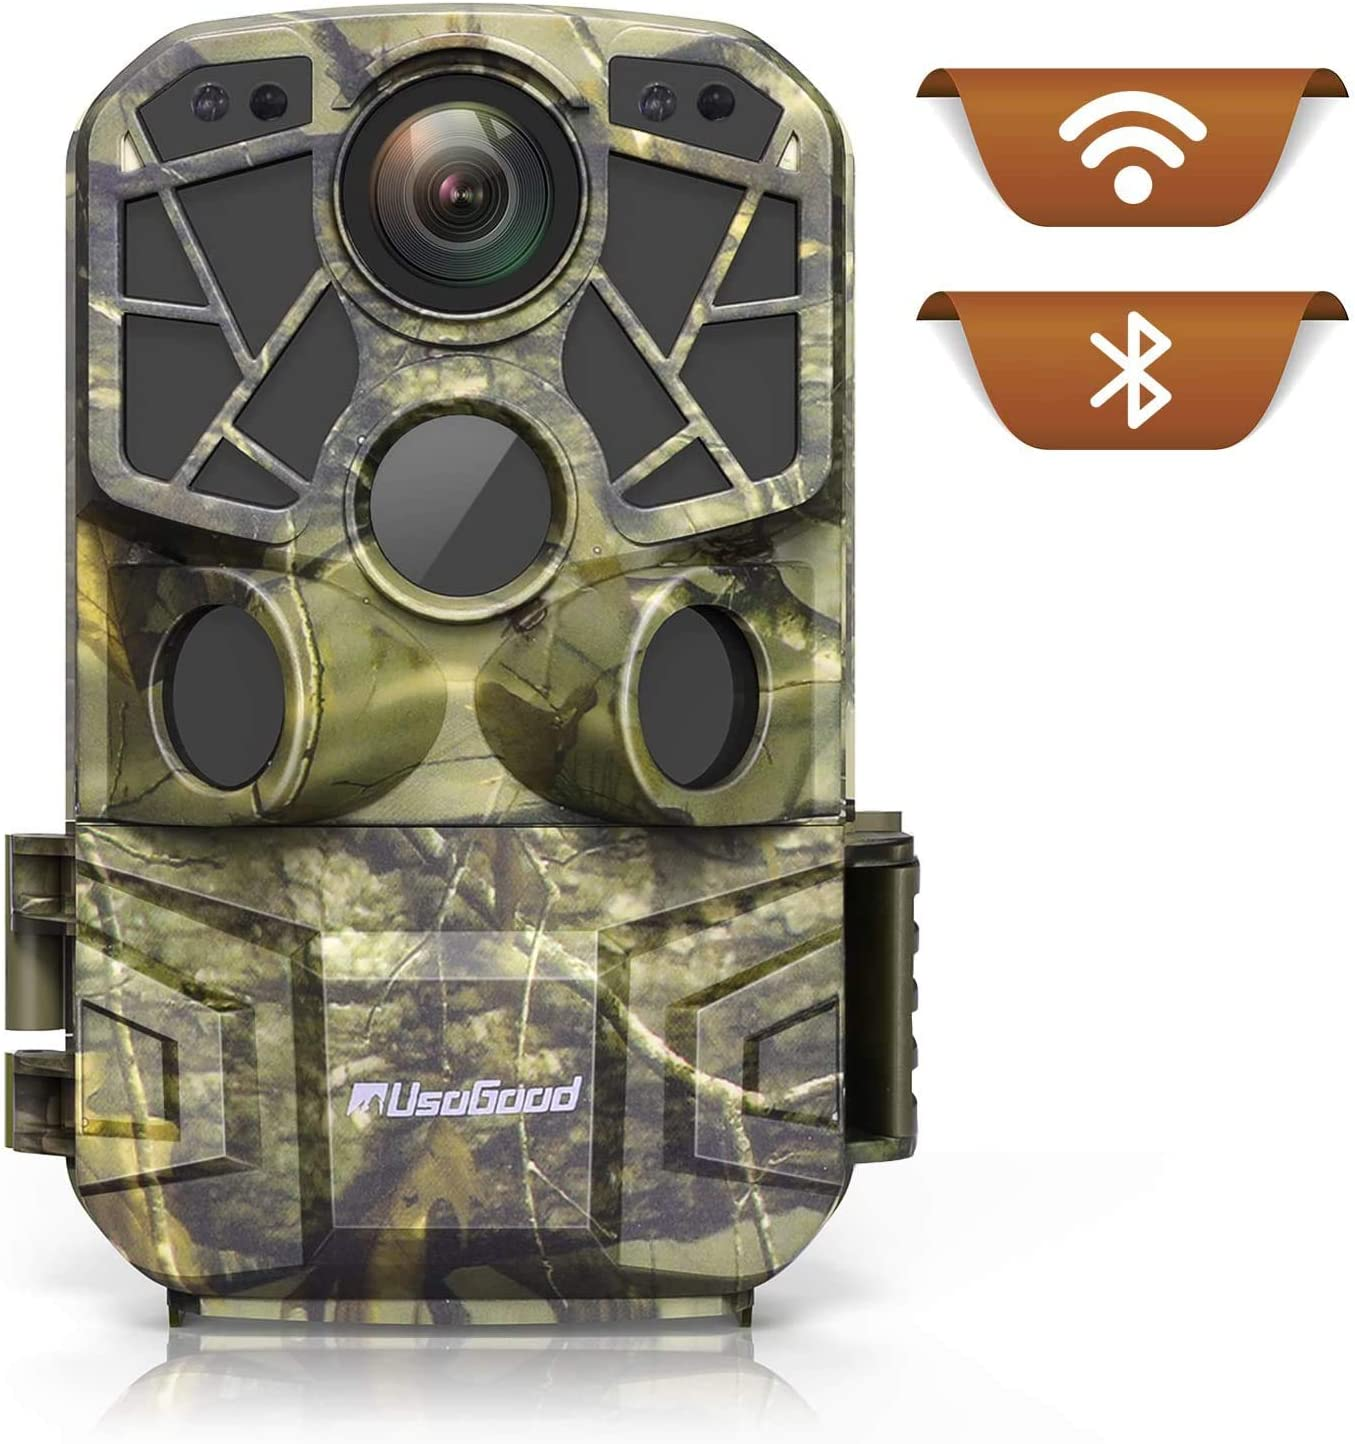 WiFi Trail Camera 4K, Usogood 24MP Bluetooth Game Cameras with Night Vision Motion Activated Waterproof Wireless Hunting Cam for Home Security, Outdoor Wildlife Monitoring, Sends Picture to Cell Phone